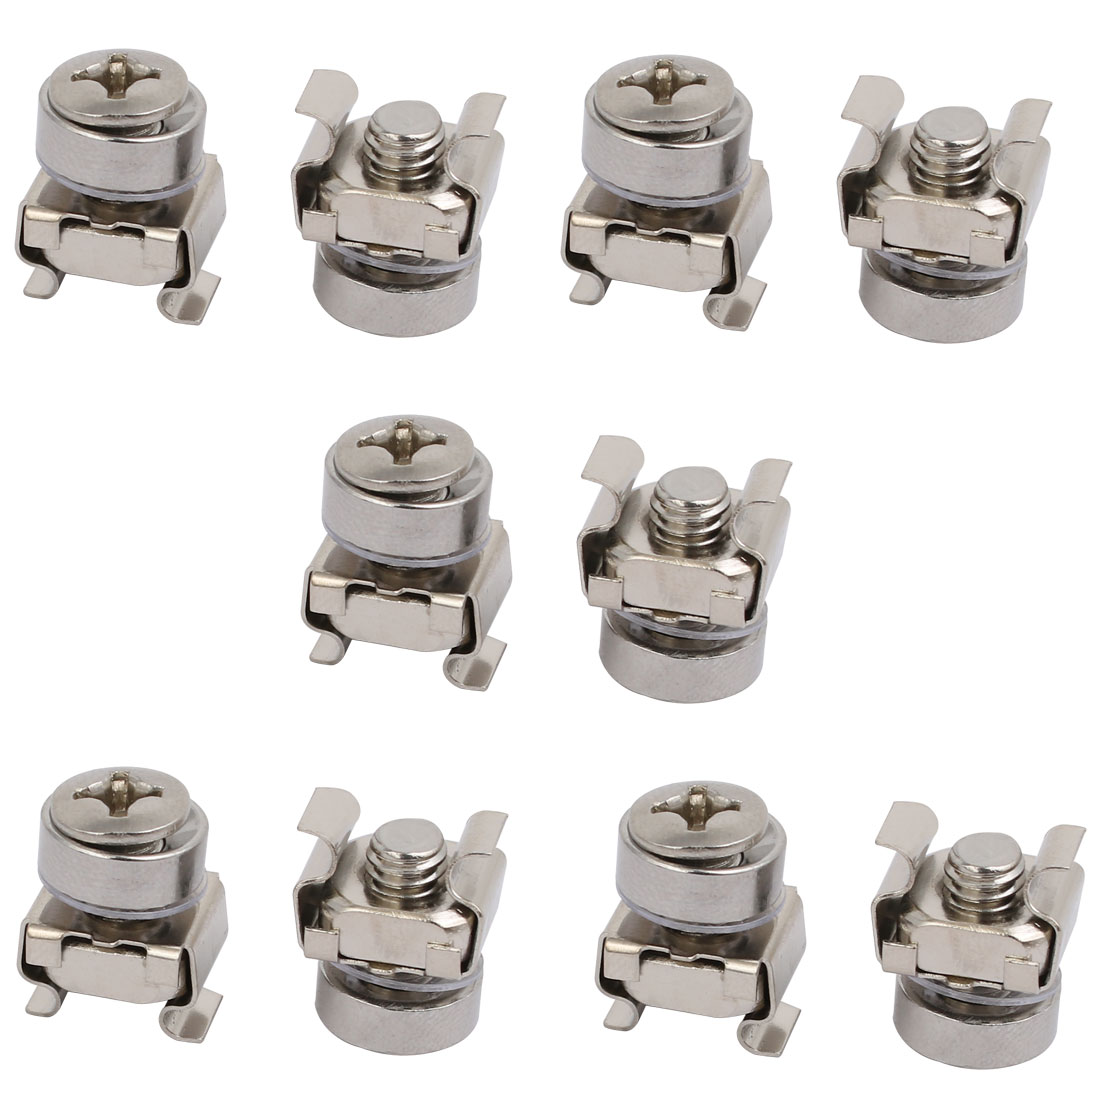 10pcs M6 Cage Nuts w Mounting Screws Washers Silver Tone for Server Rack Cabinet